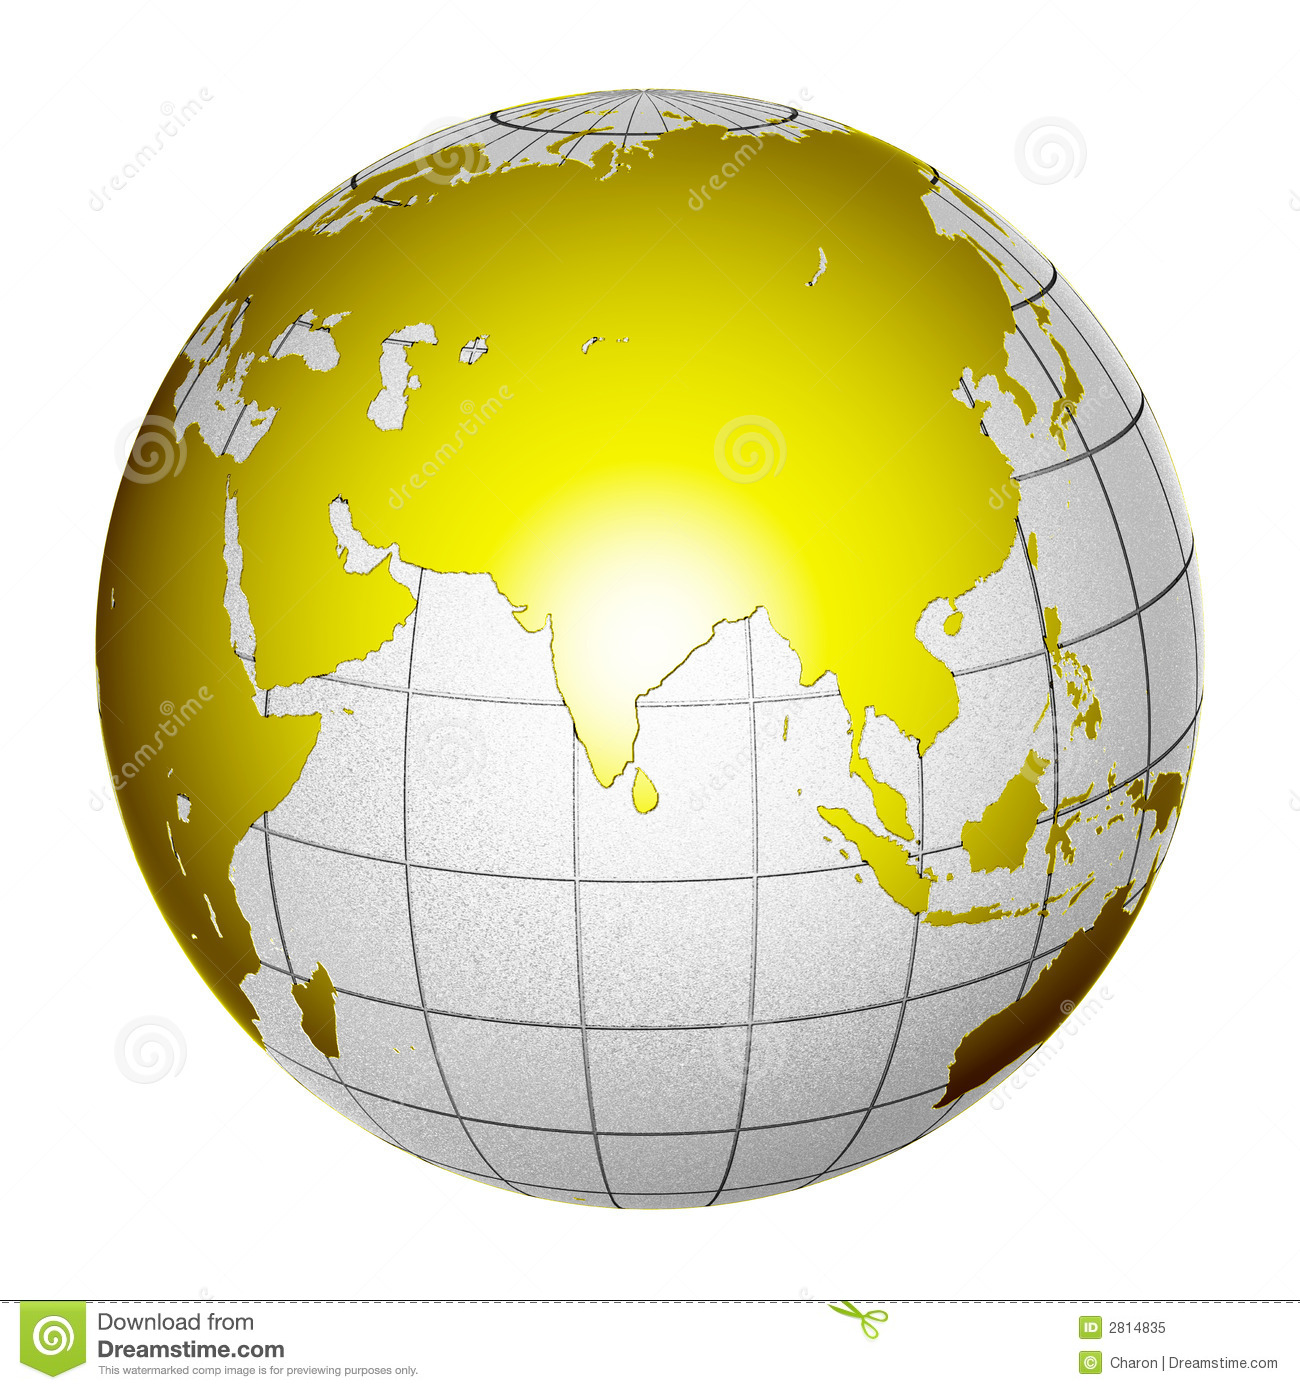 Planet globe earth 3d isolated stock illustration illustration planet globe earth 3d isolated india core gumiabroncs Image collections